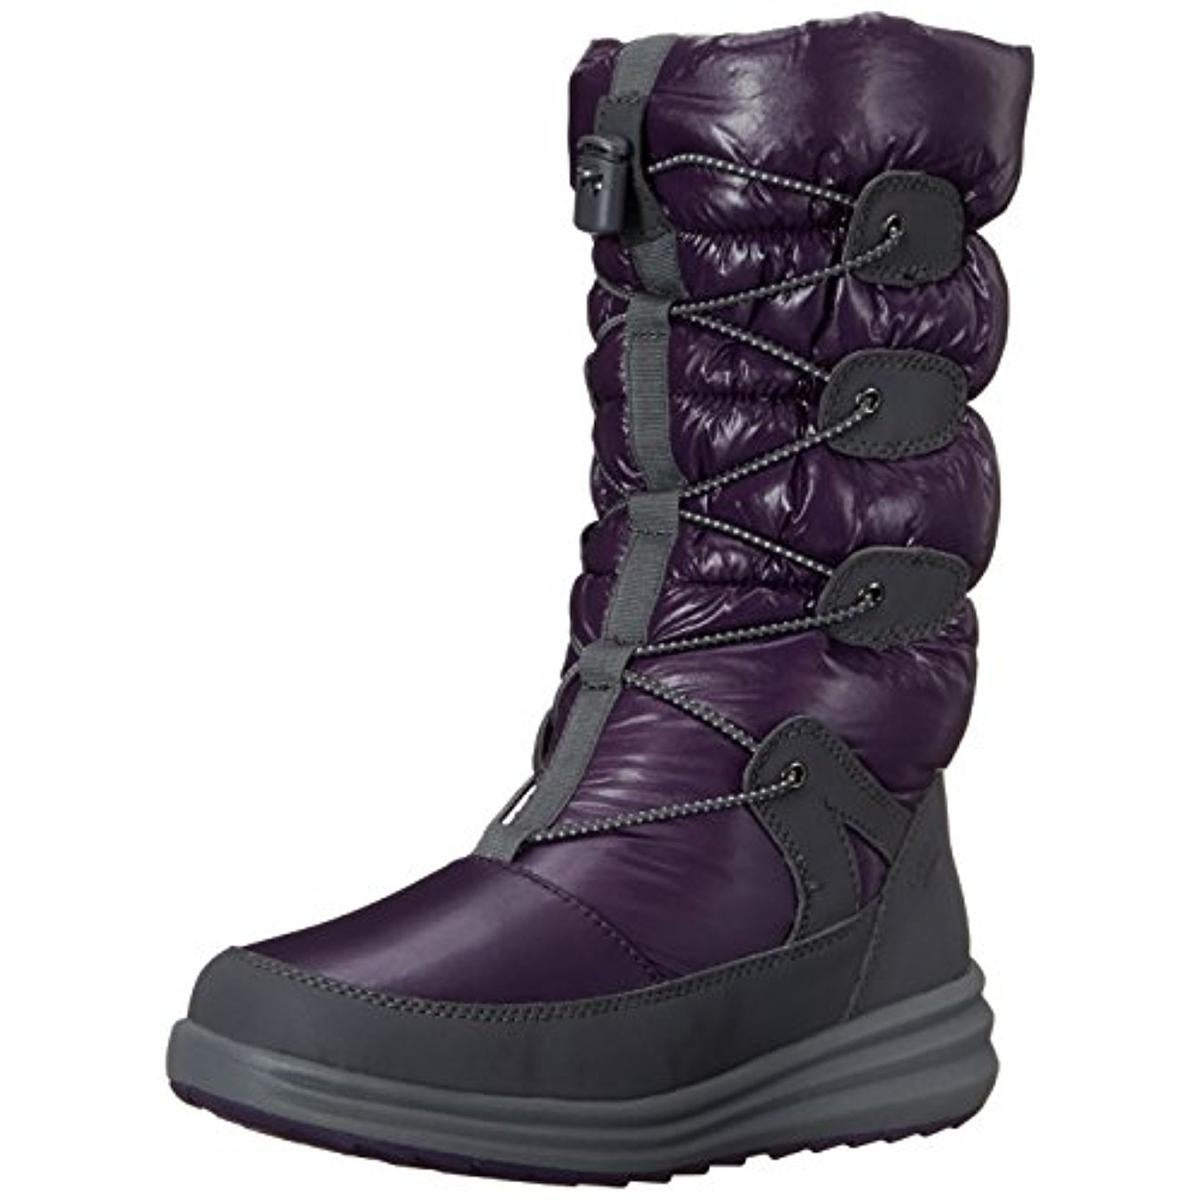 Cobb Hill Womens Brenda Snow Boots Quilted Faux Fur Lined - Thumbnail 0